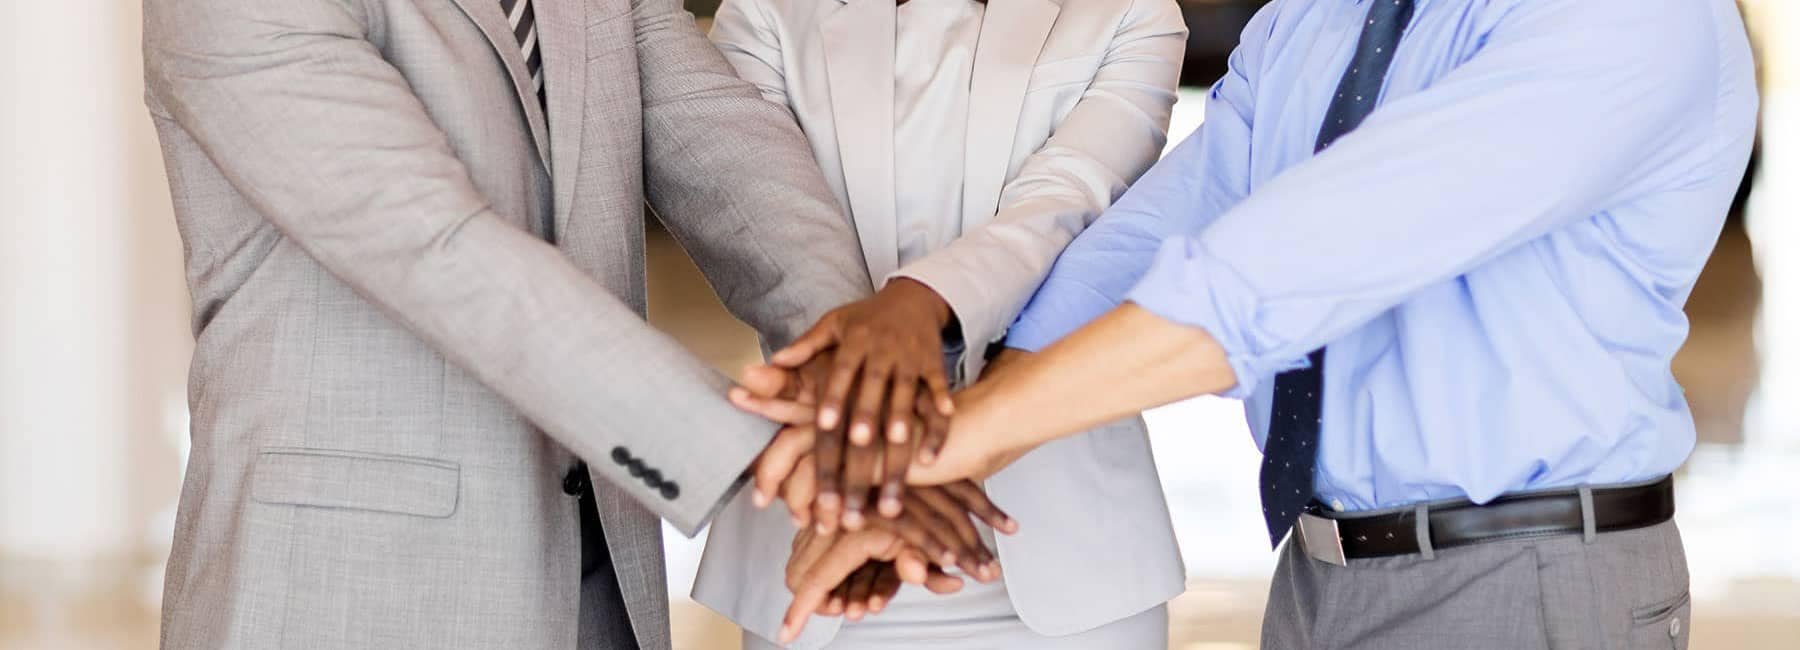 Three Business People with Hands in Middle